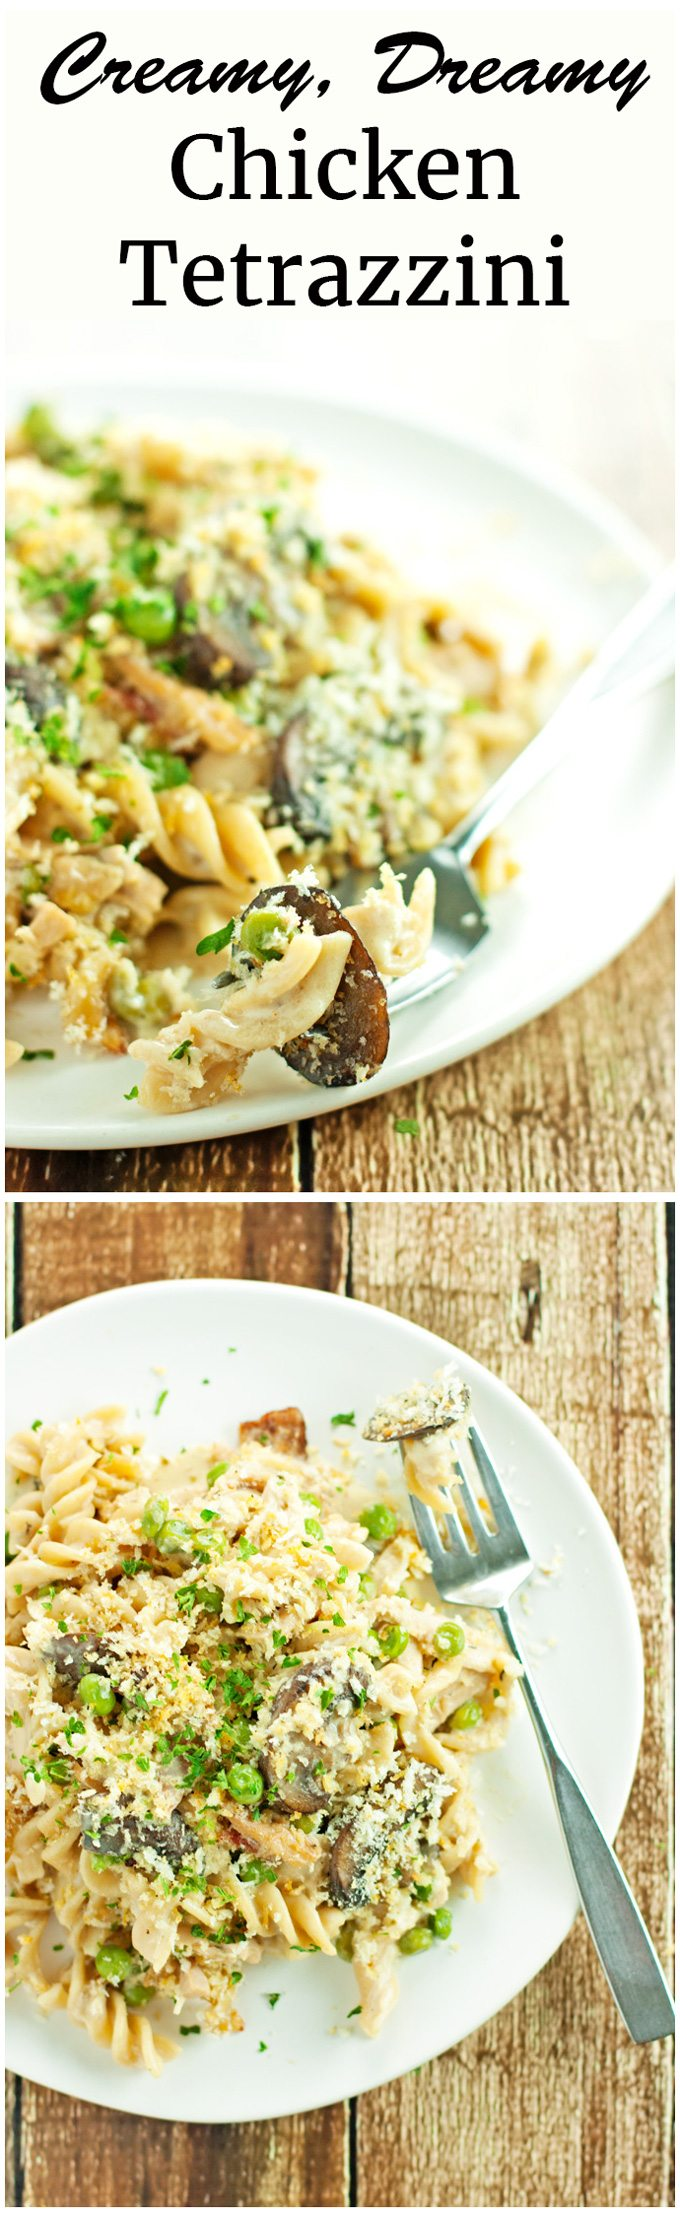 Creamy, dreamy chicken tetrazzini bursting with chicken, mushrooms, peas, and bacon. Dinner is served!